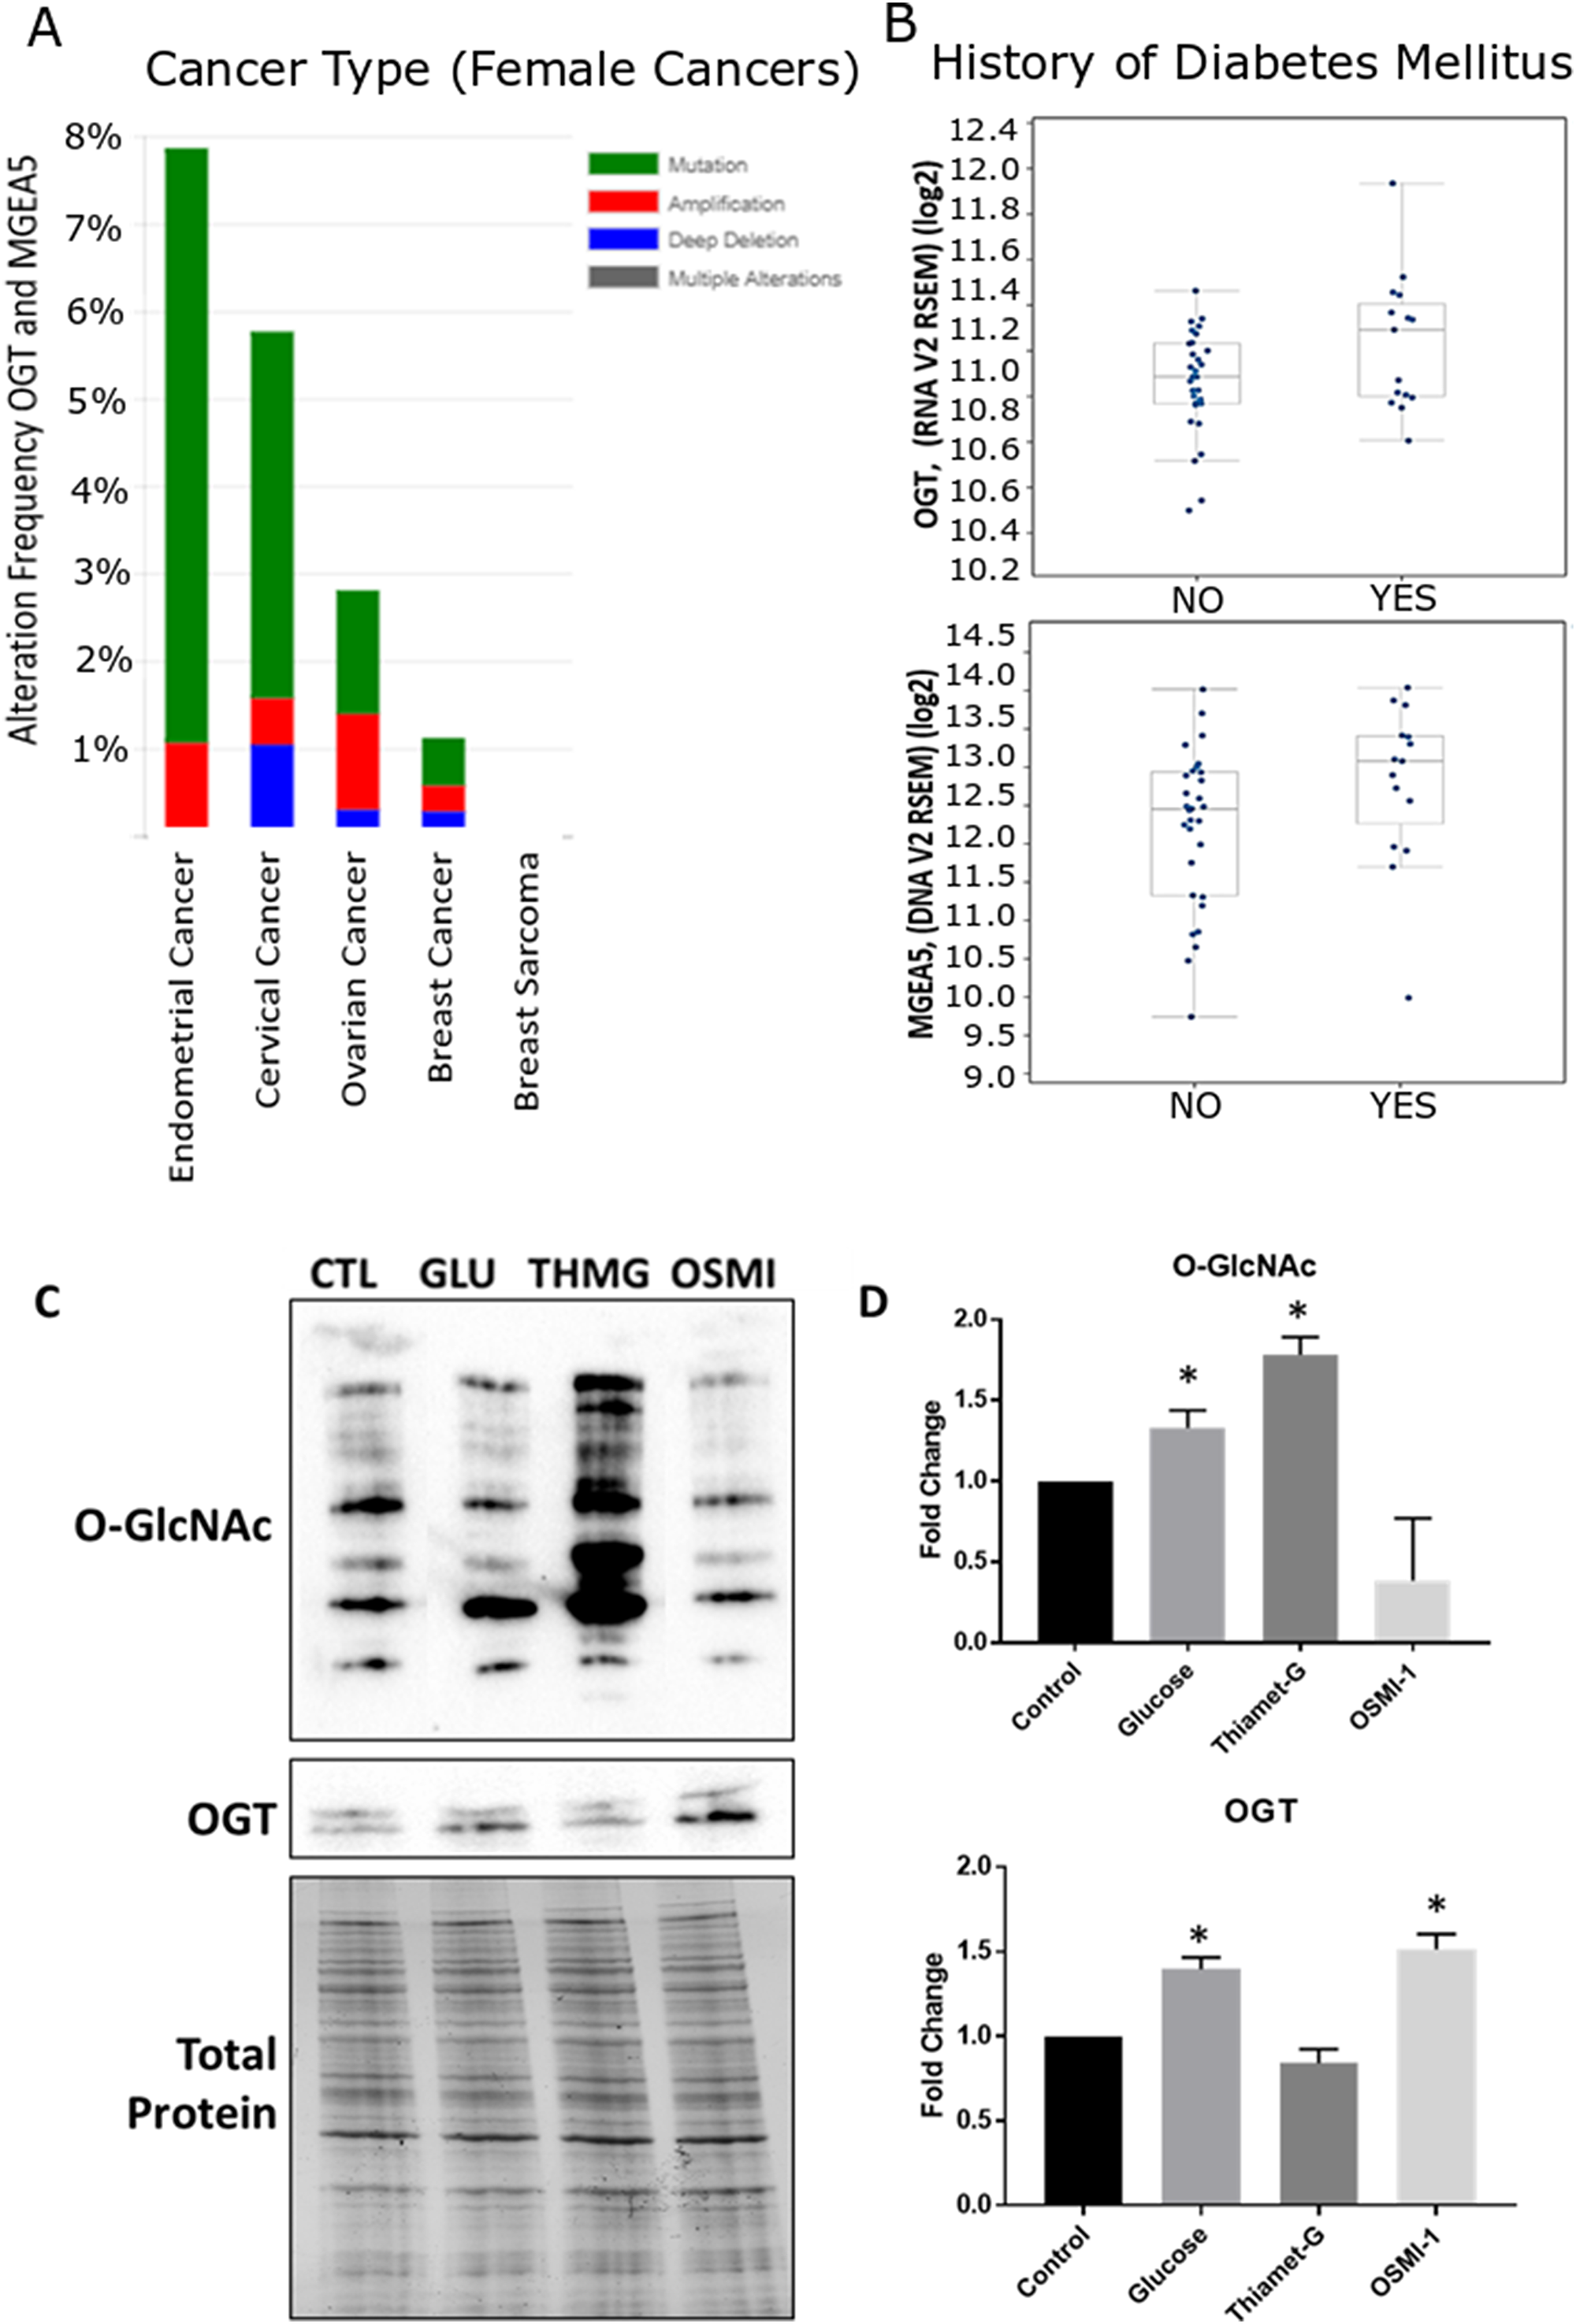 Meta-analysis of O-GlcNAc alteration in female cancers and validation of global O-GlcNAc modification in Ishikawa cells.